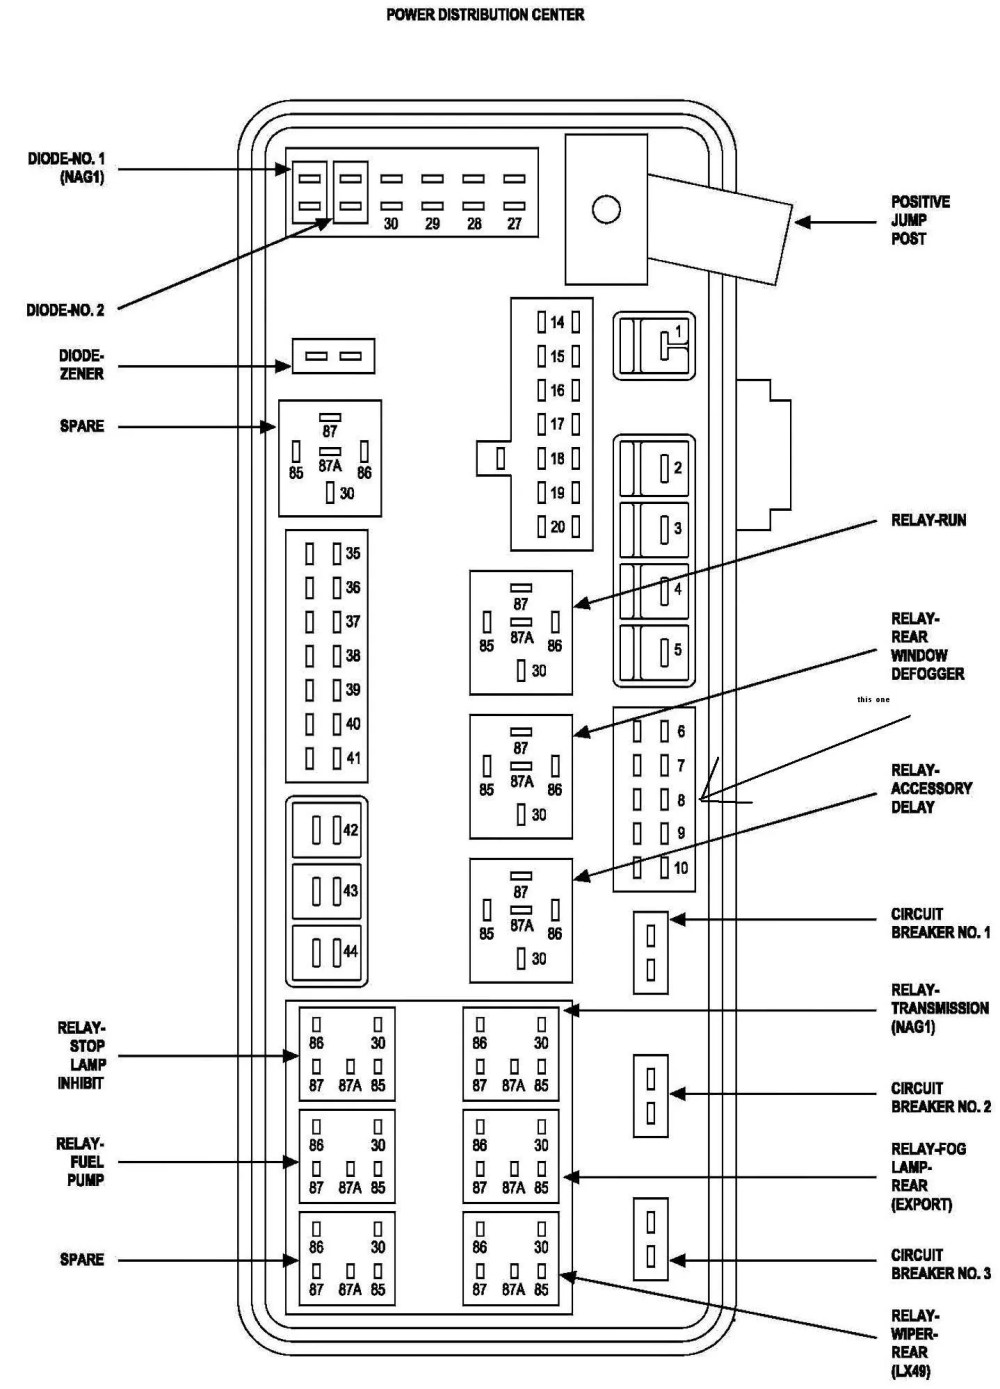 medium resolution of 2011 dodge ram 1500 fuse box diagram wiring diagram portal 2002 dodge ram electrical diagram 2001